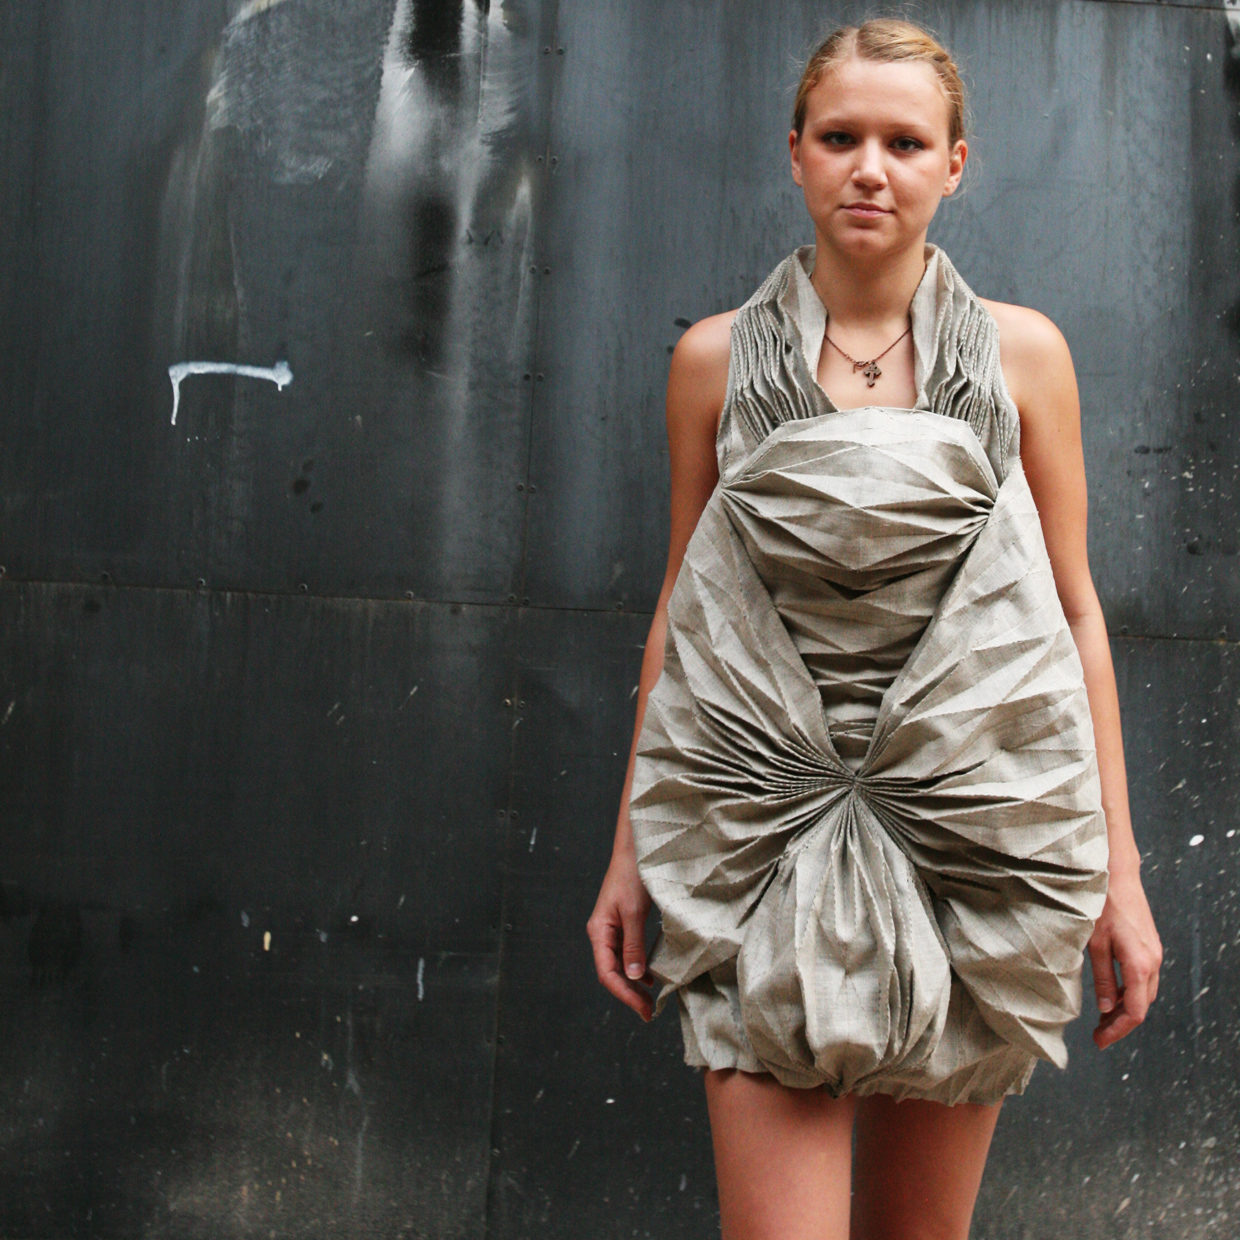 Fab Textiles, digital fabrication applied in fashion and wearables